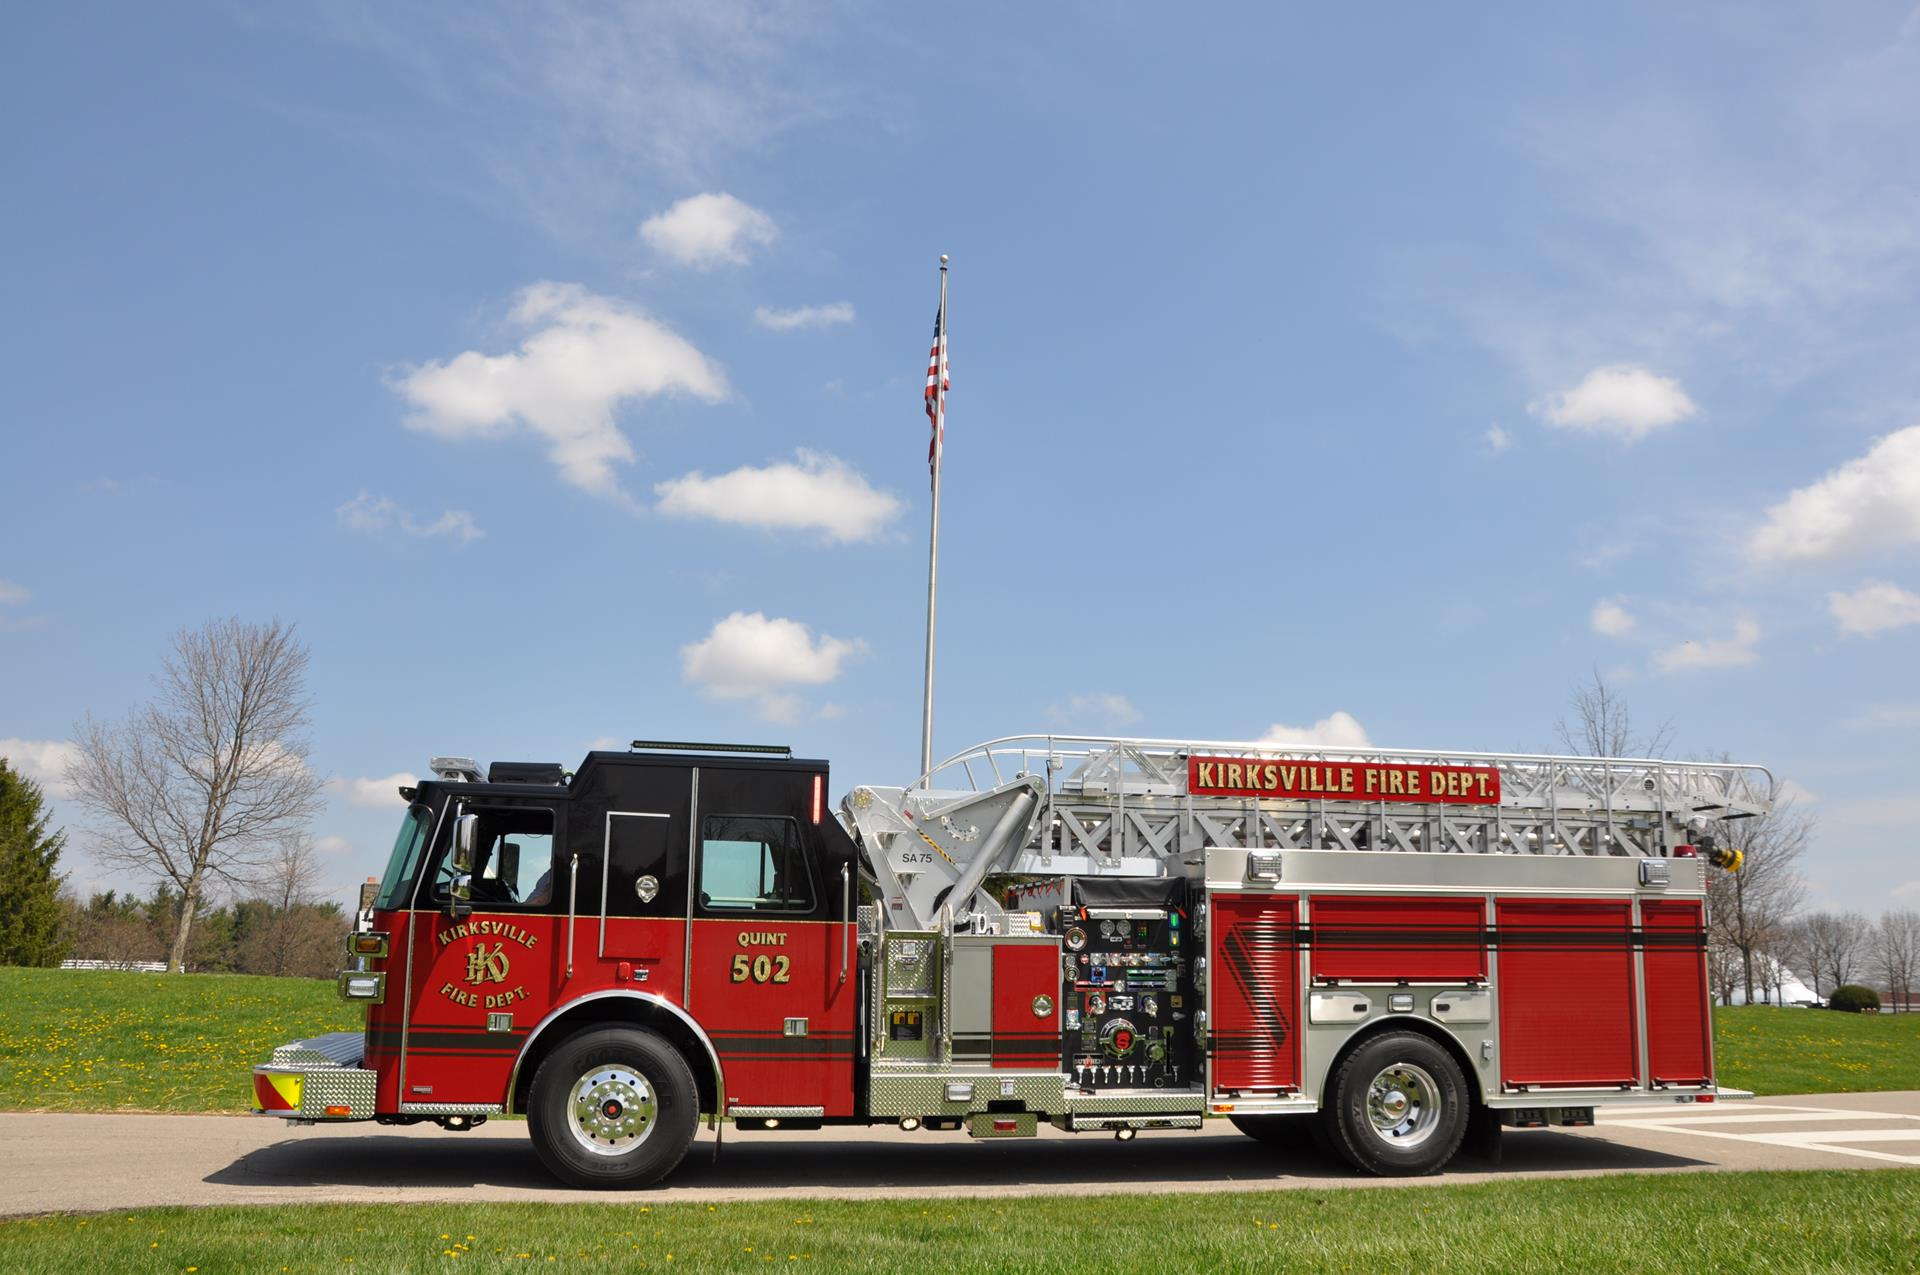 SA 75 – Kirksville Fire Department, MO